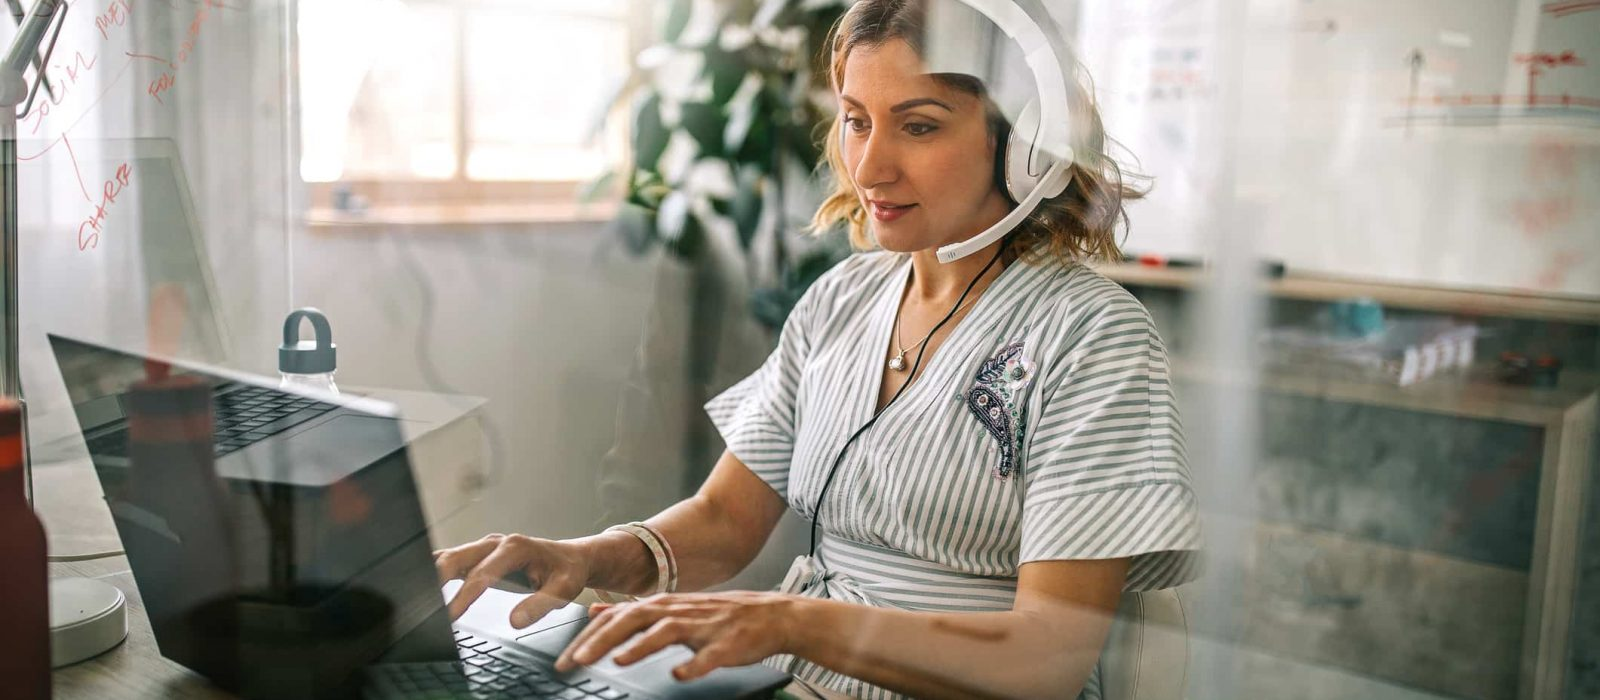 Businesswoman using laptop and headphones at office